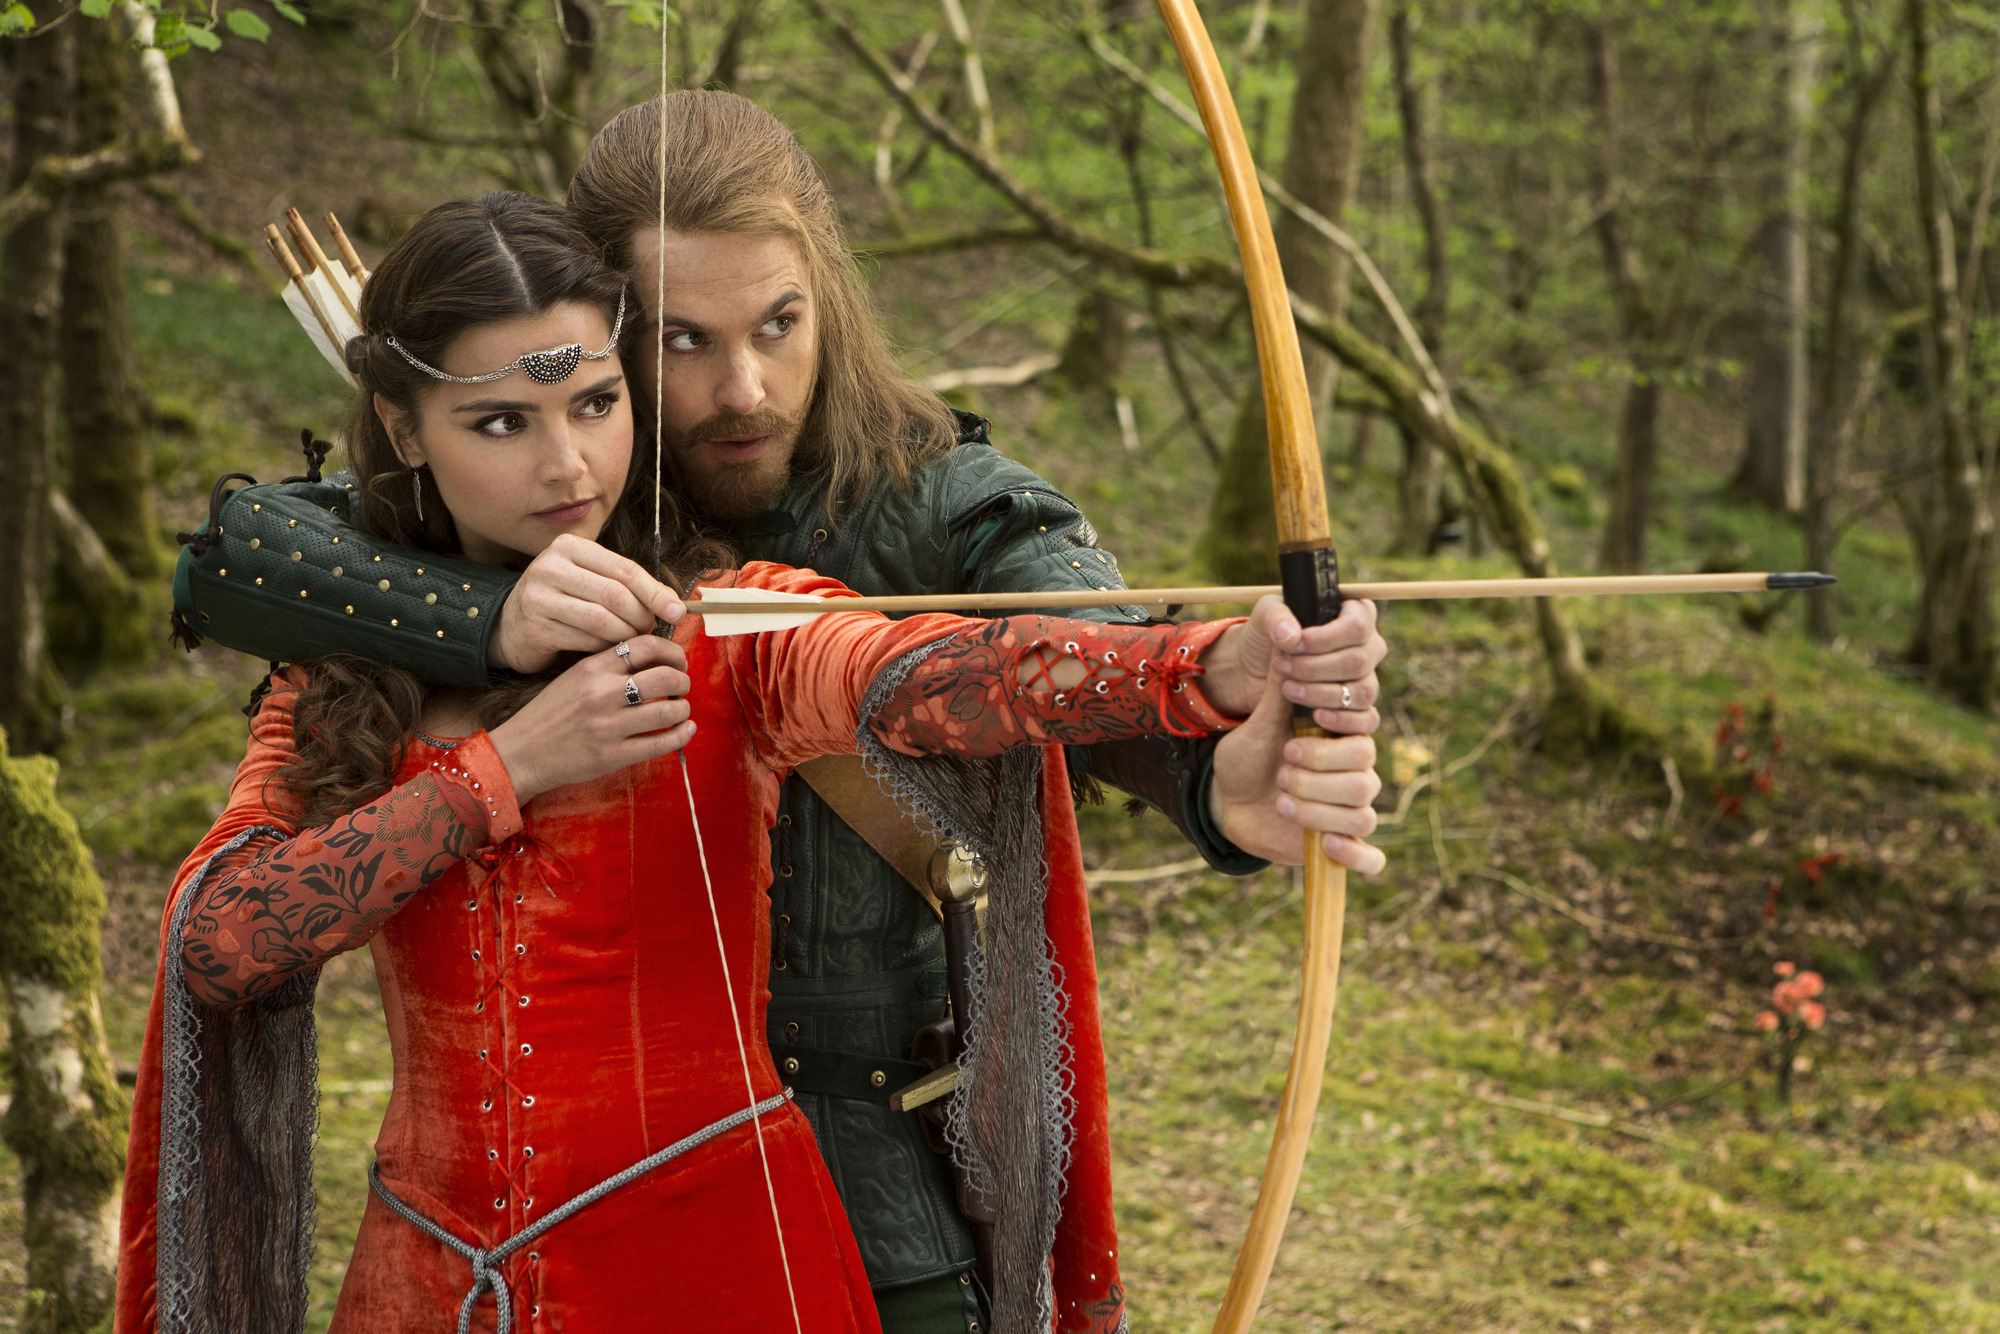 Doctor Who season 8, episode 3: Is Robot Of Sherwood more of a farce than a comedy?